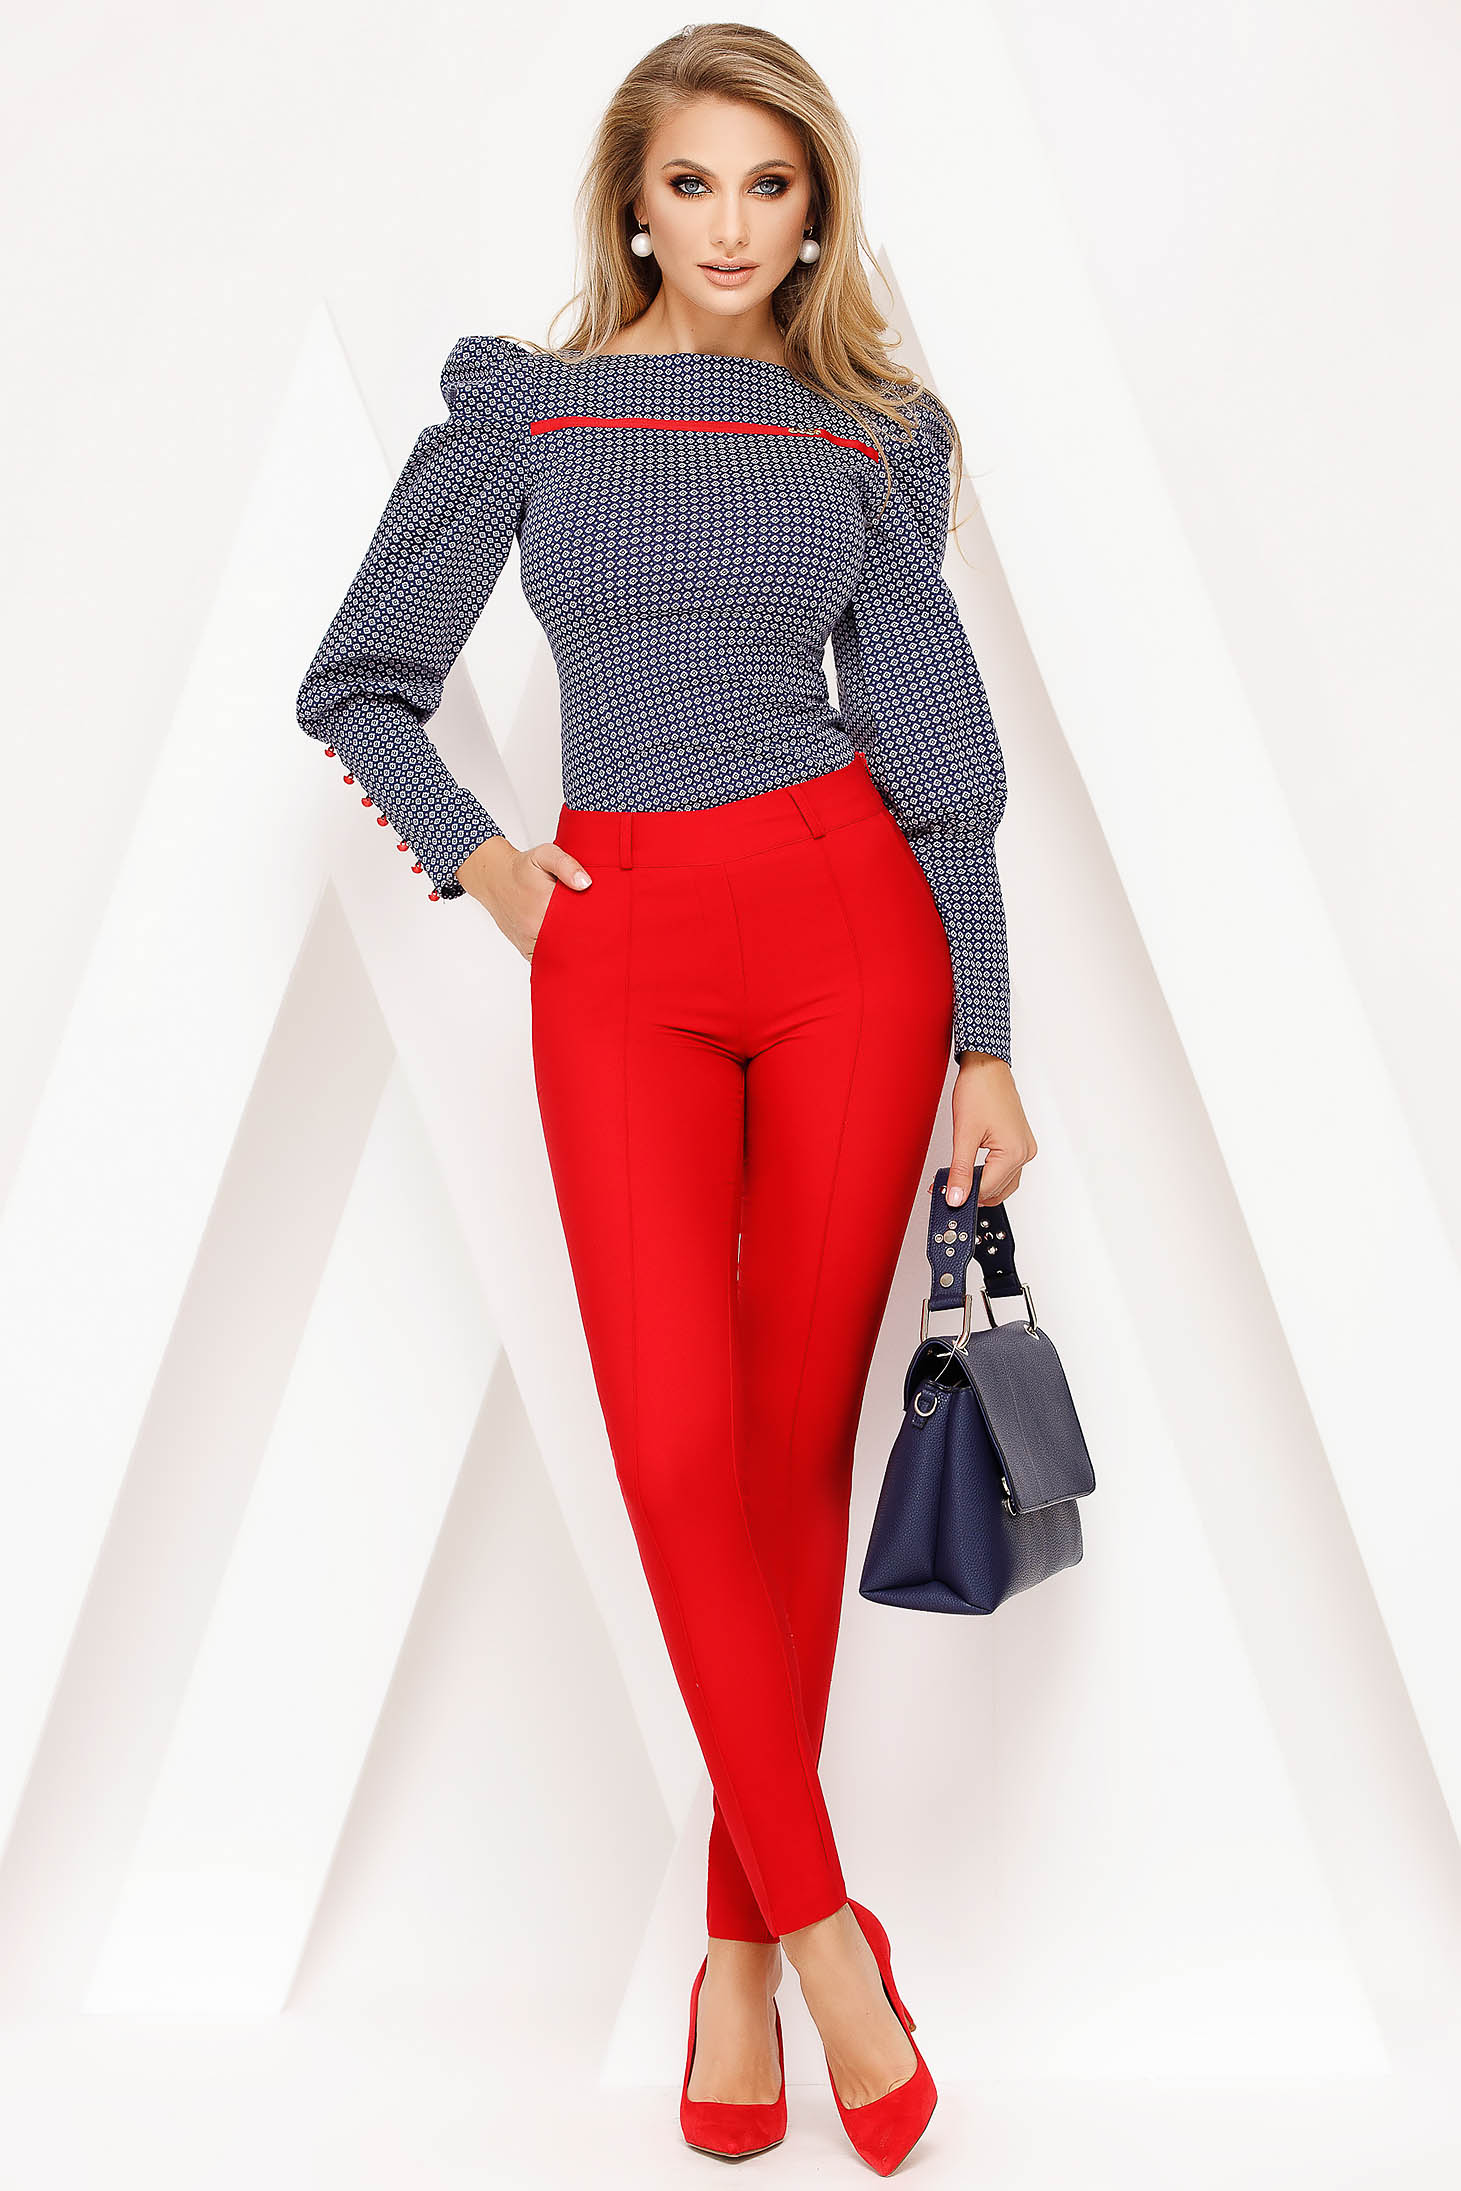 Red trousers elegant conical medium waist accessorized with belt